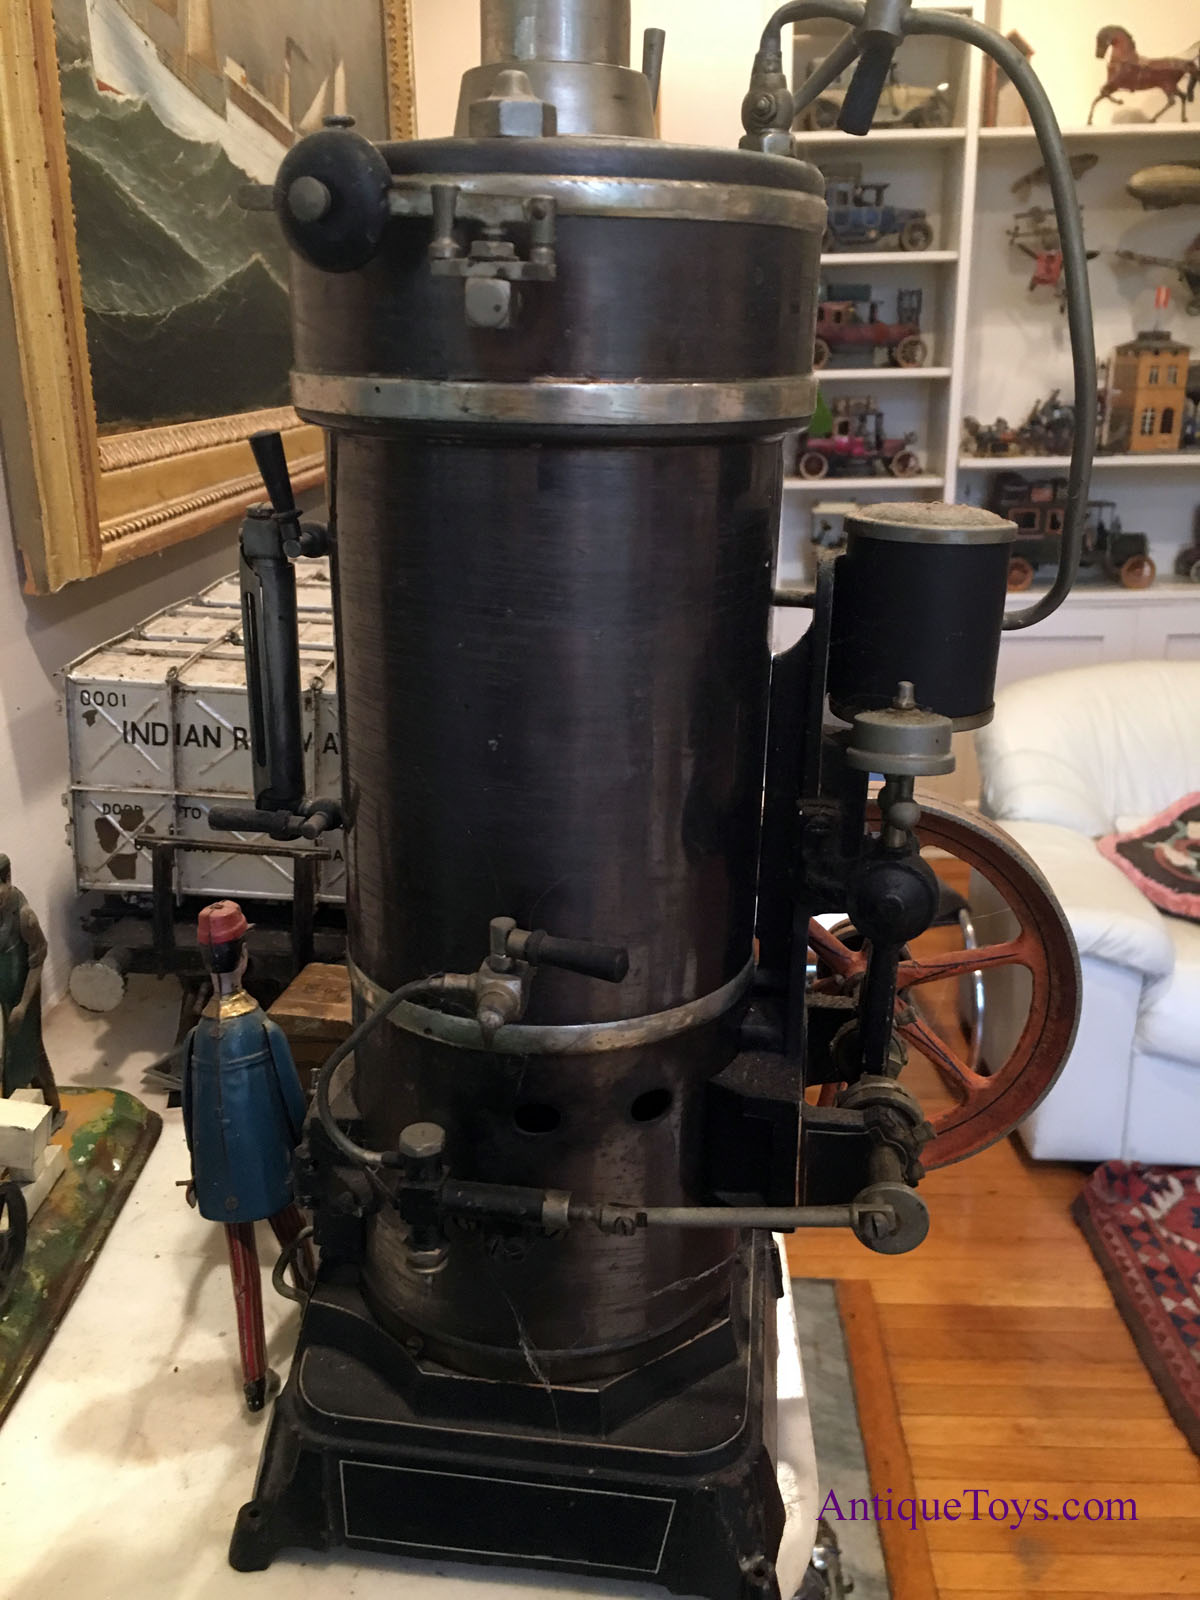 Wood Stoves For Sale >> Bing, G.B.N., Steam Engine- Extra Large - Antique Toys for ...